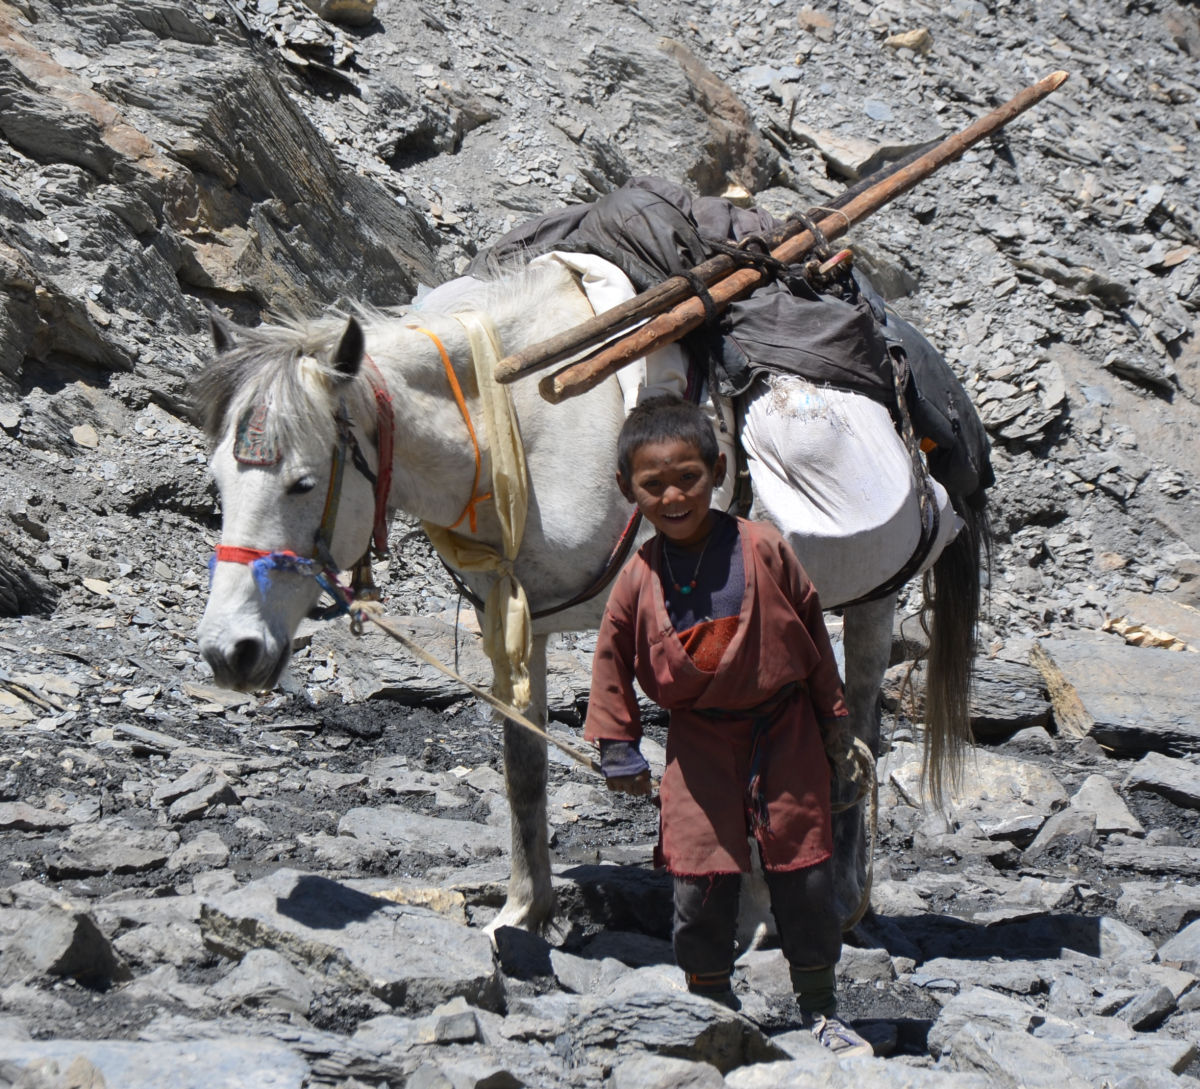 Kid's effort to support the family - Dolpo kid with donkey